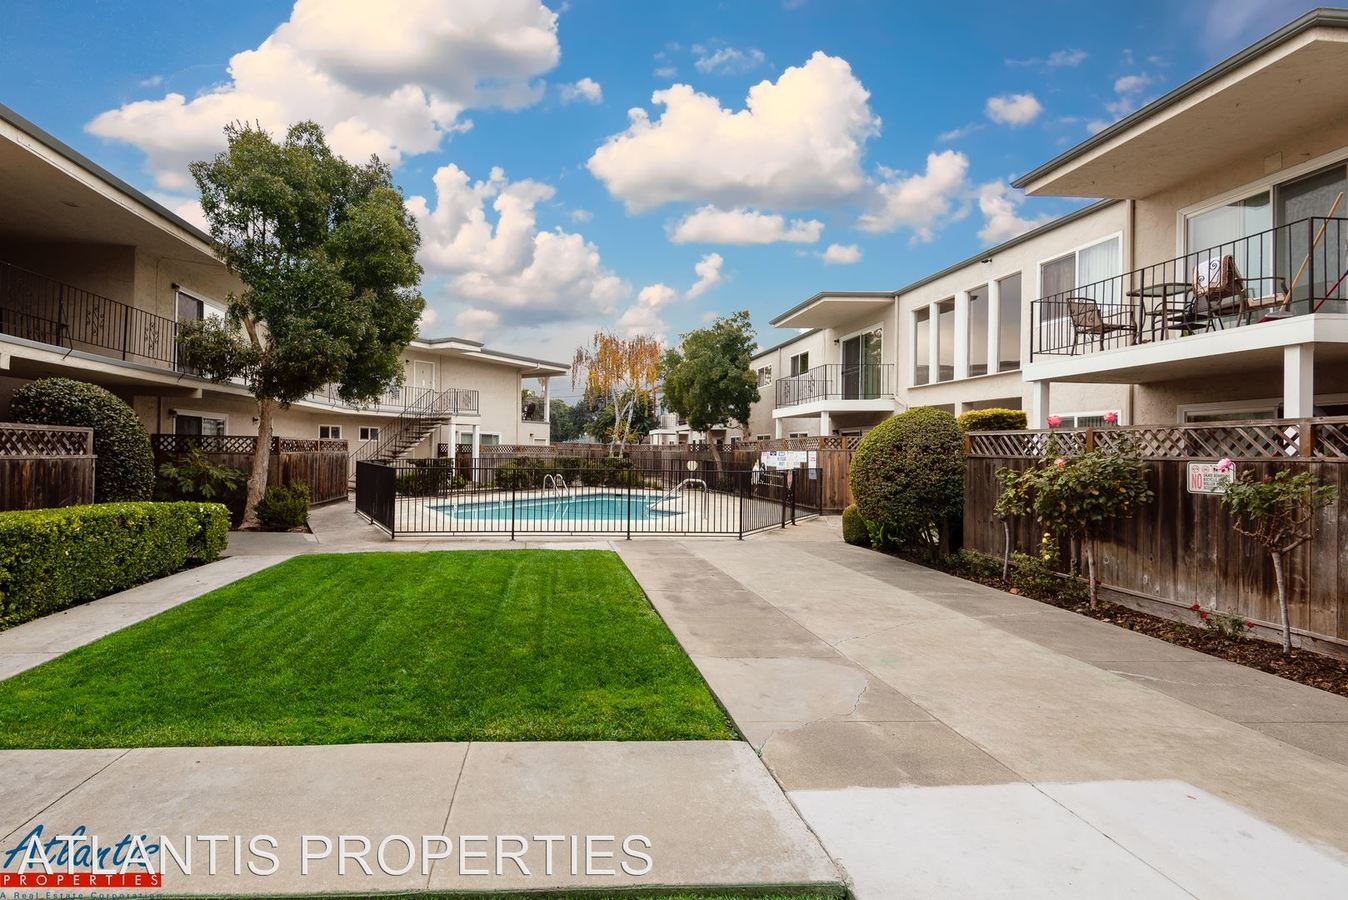 1 Bedroom 1 Bathroom Apartment for rent at 642 Blythe Court in Sunnyvale, CA